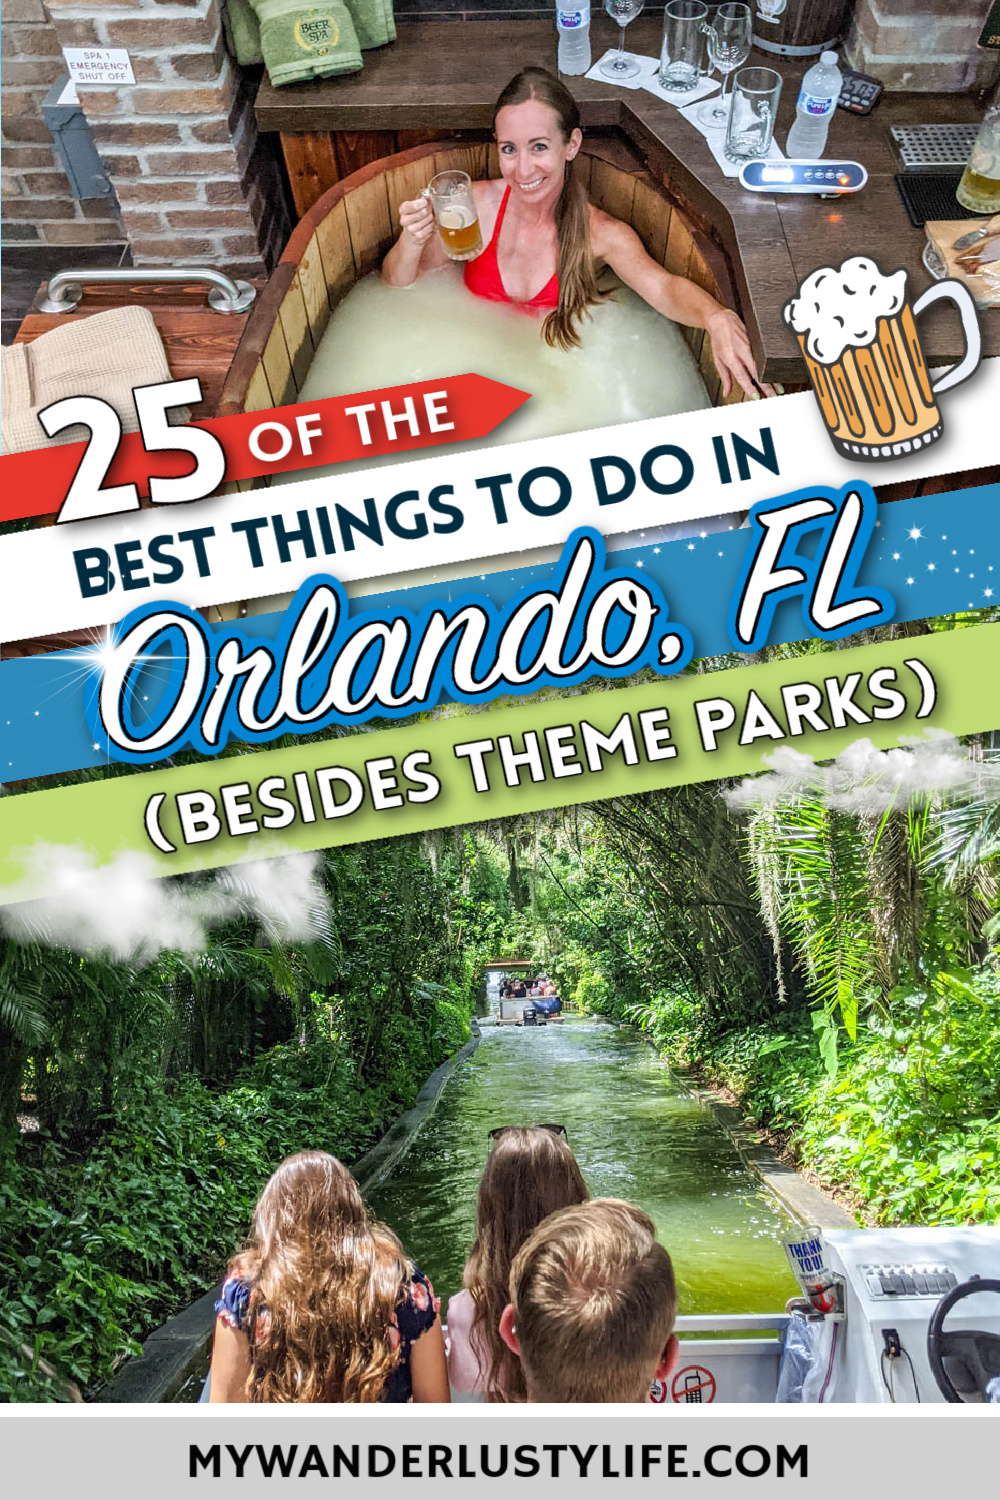 The Best Things to Do in Orlando, Florida besides theme parks | Craft beer, beer spa, water sports, adventure activities, museums, history, art, culture, shopping, dining, and so much more.